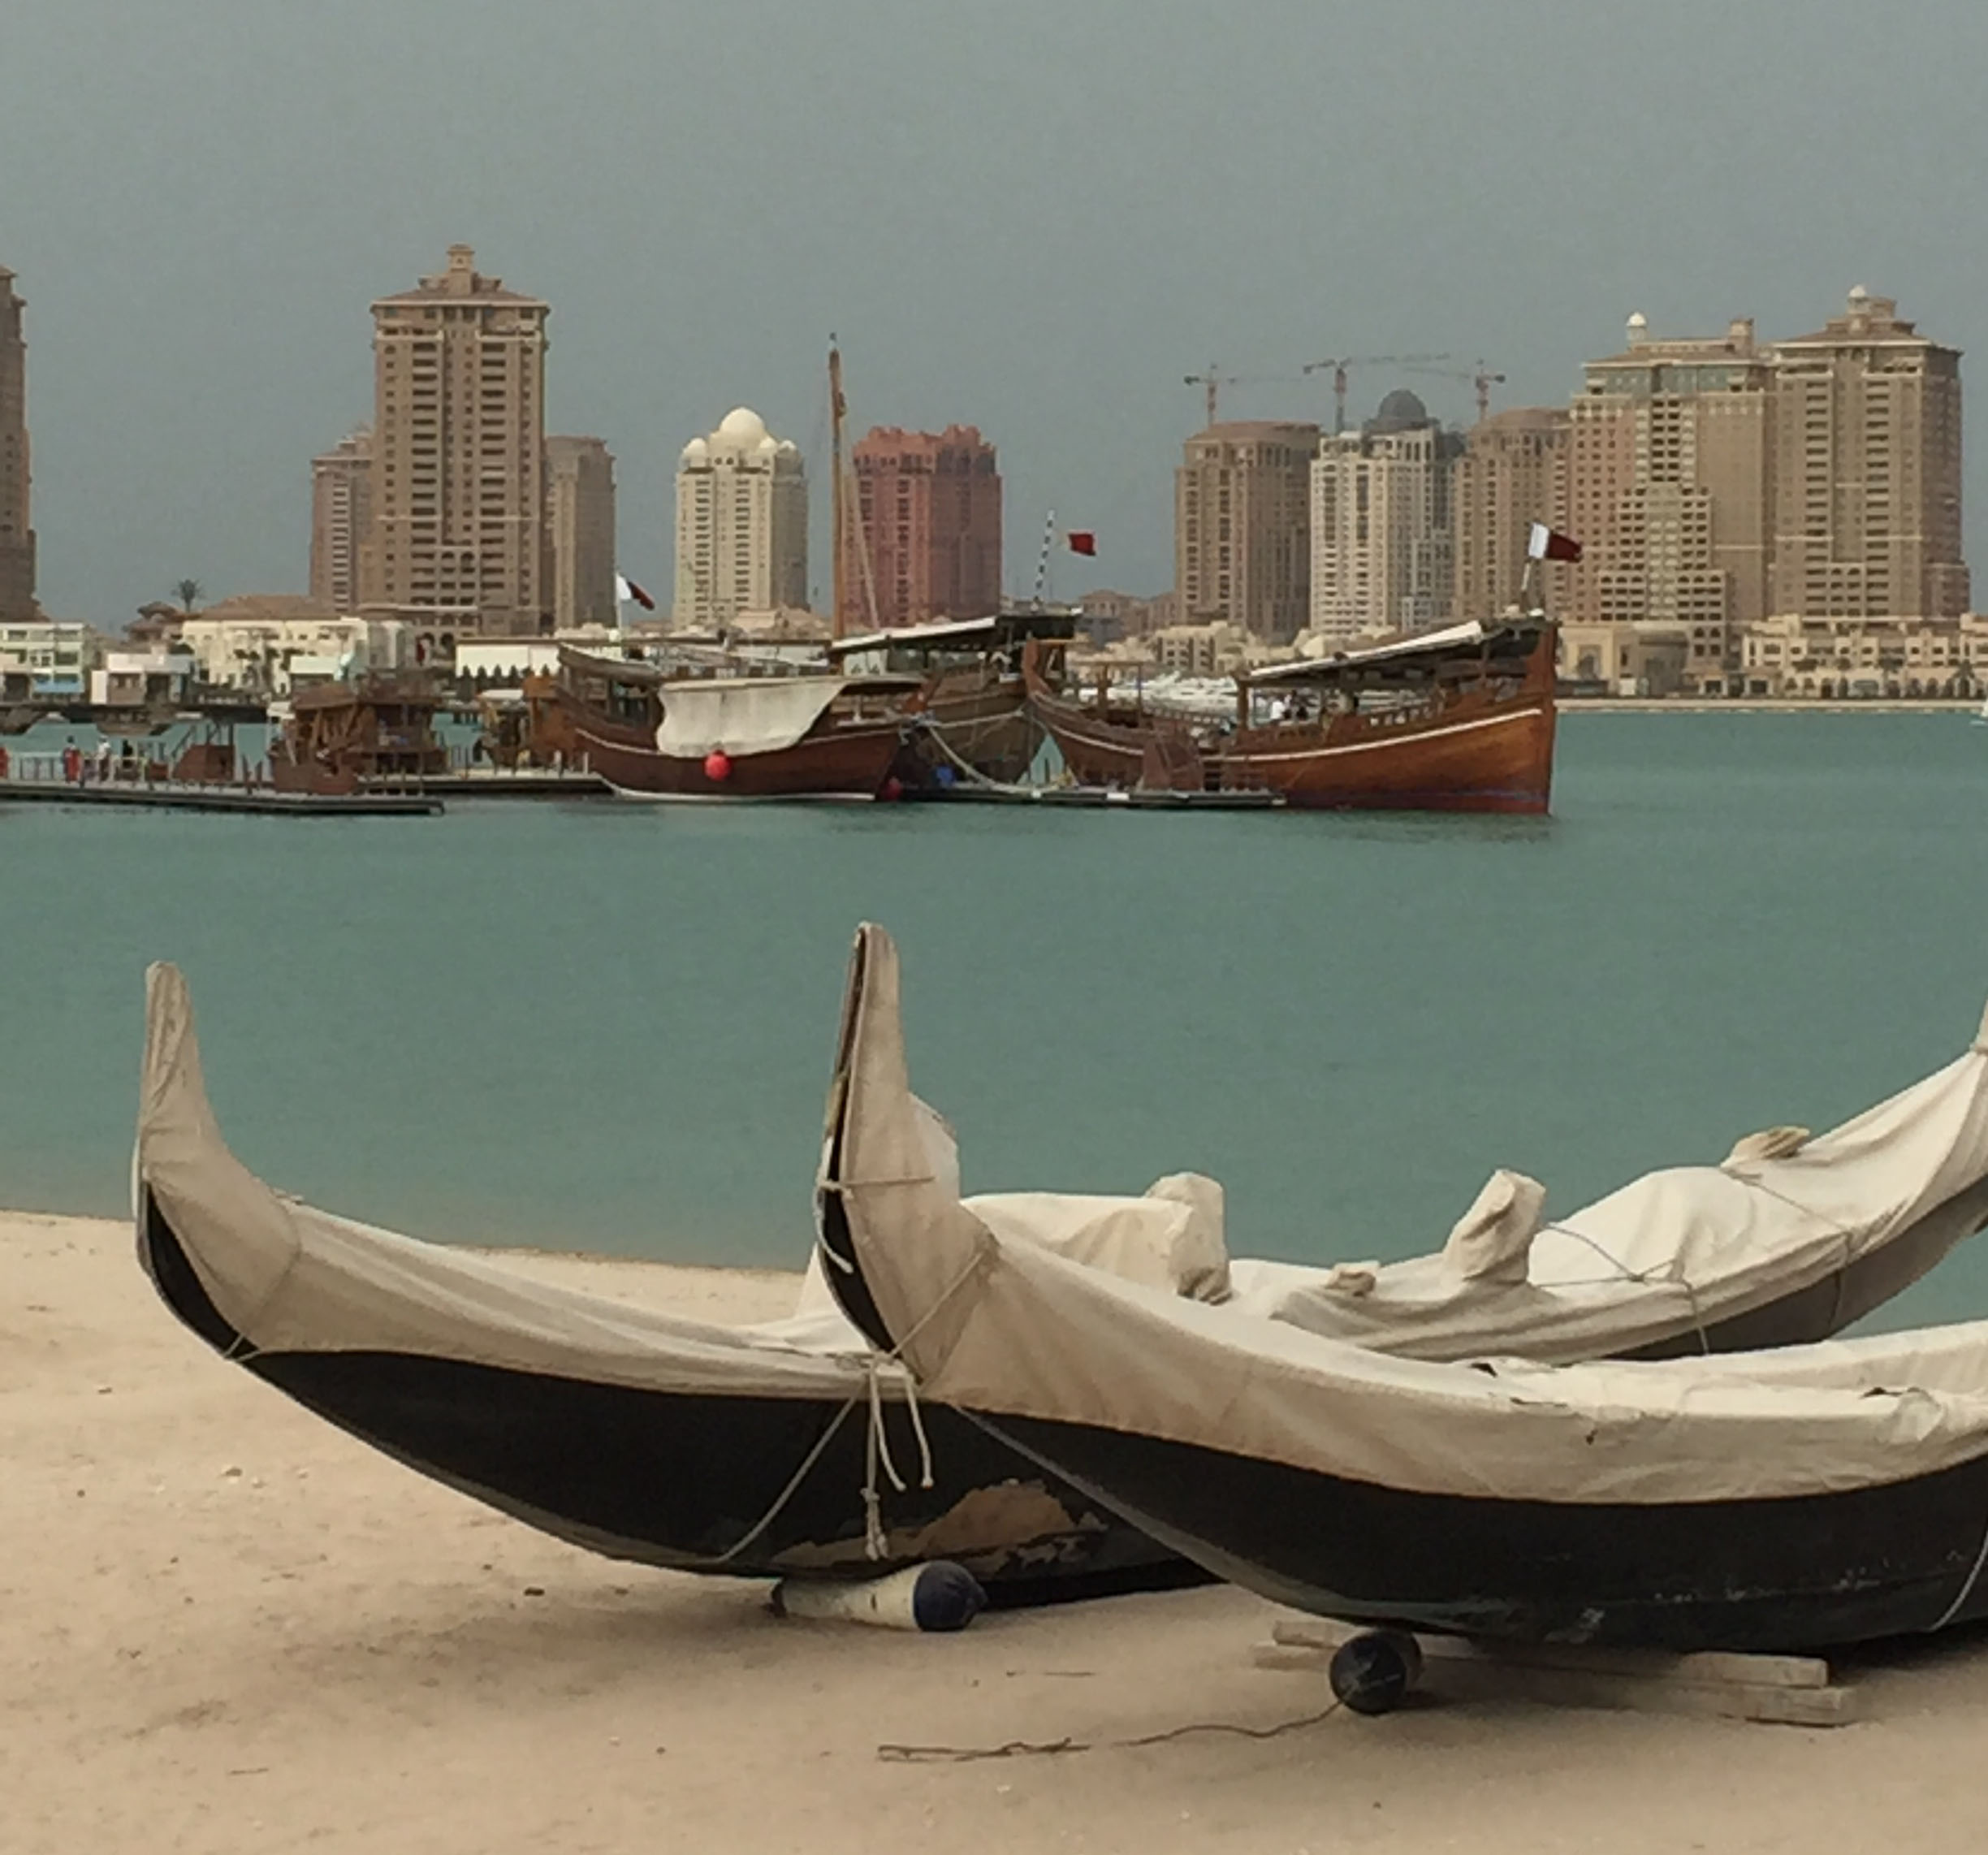 Boats and buildings in Doha, Qatar